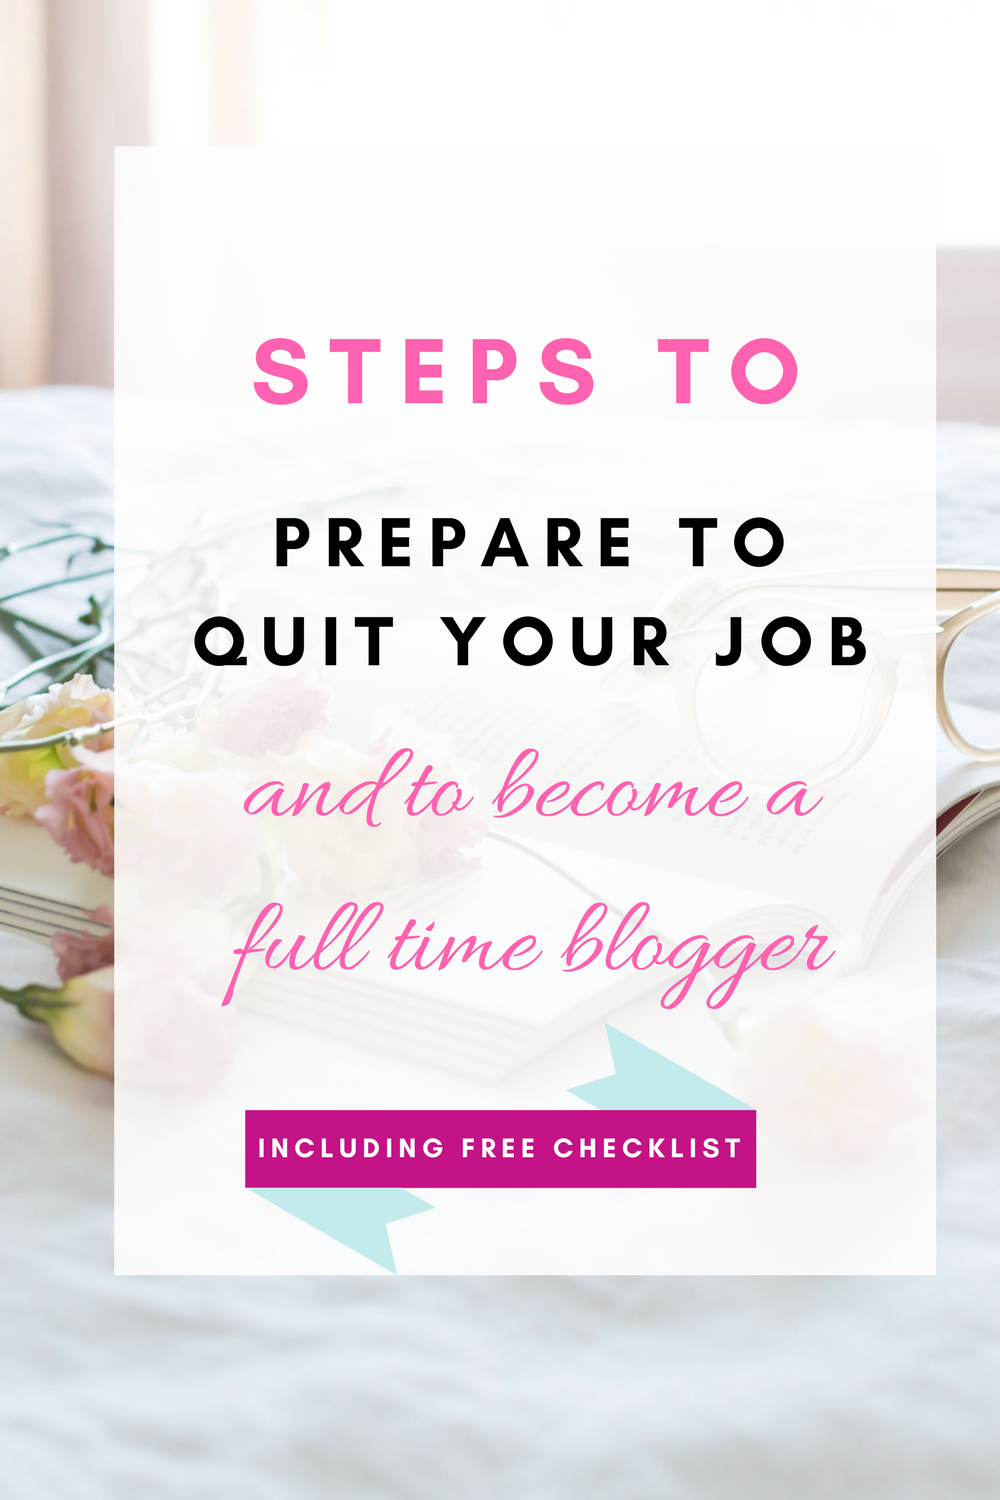 Steps to prepare to quit your job and to become a fulltime blogger. Including free checklist click here to find out more